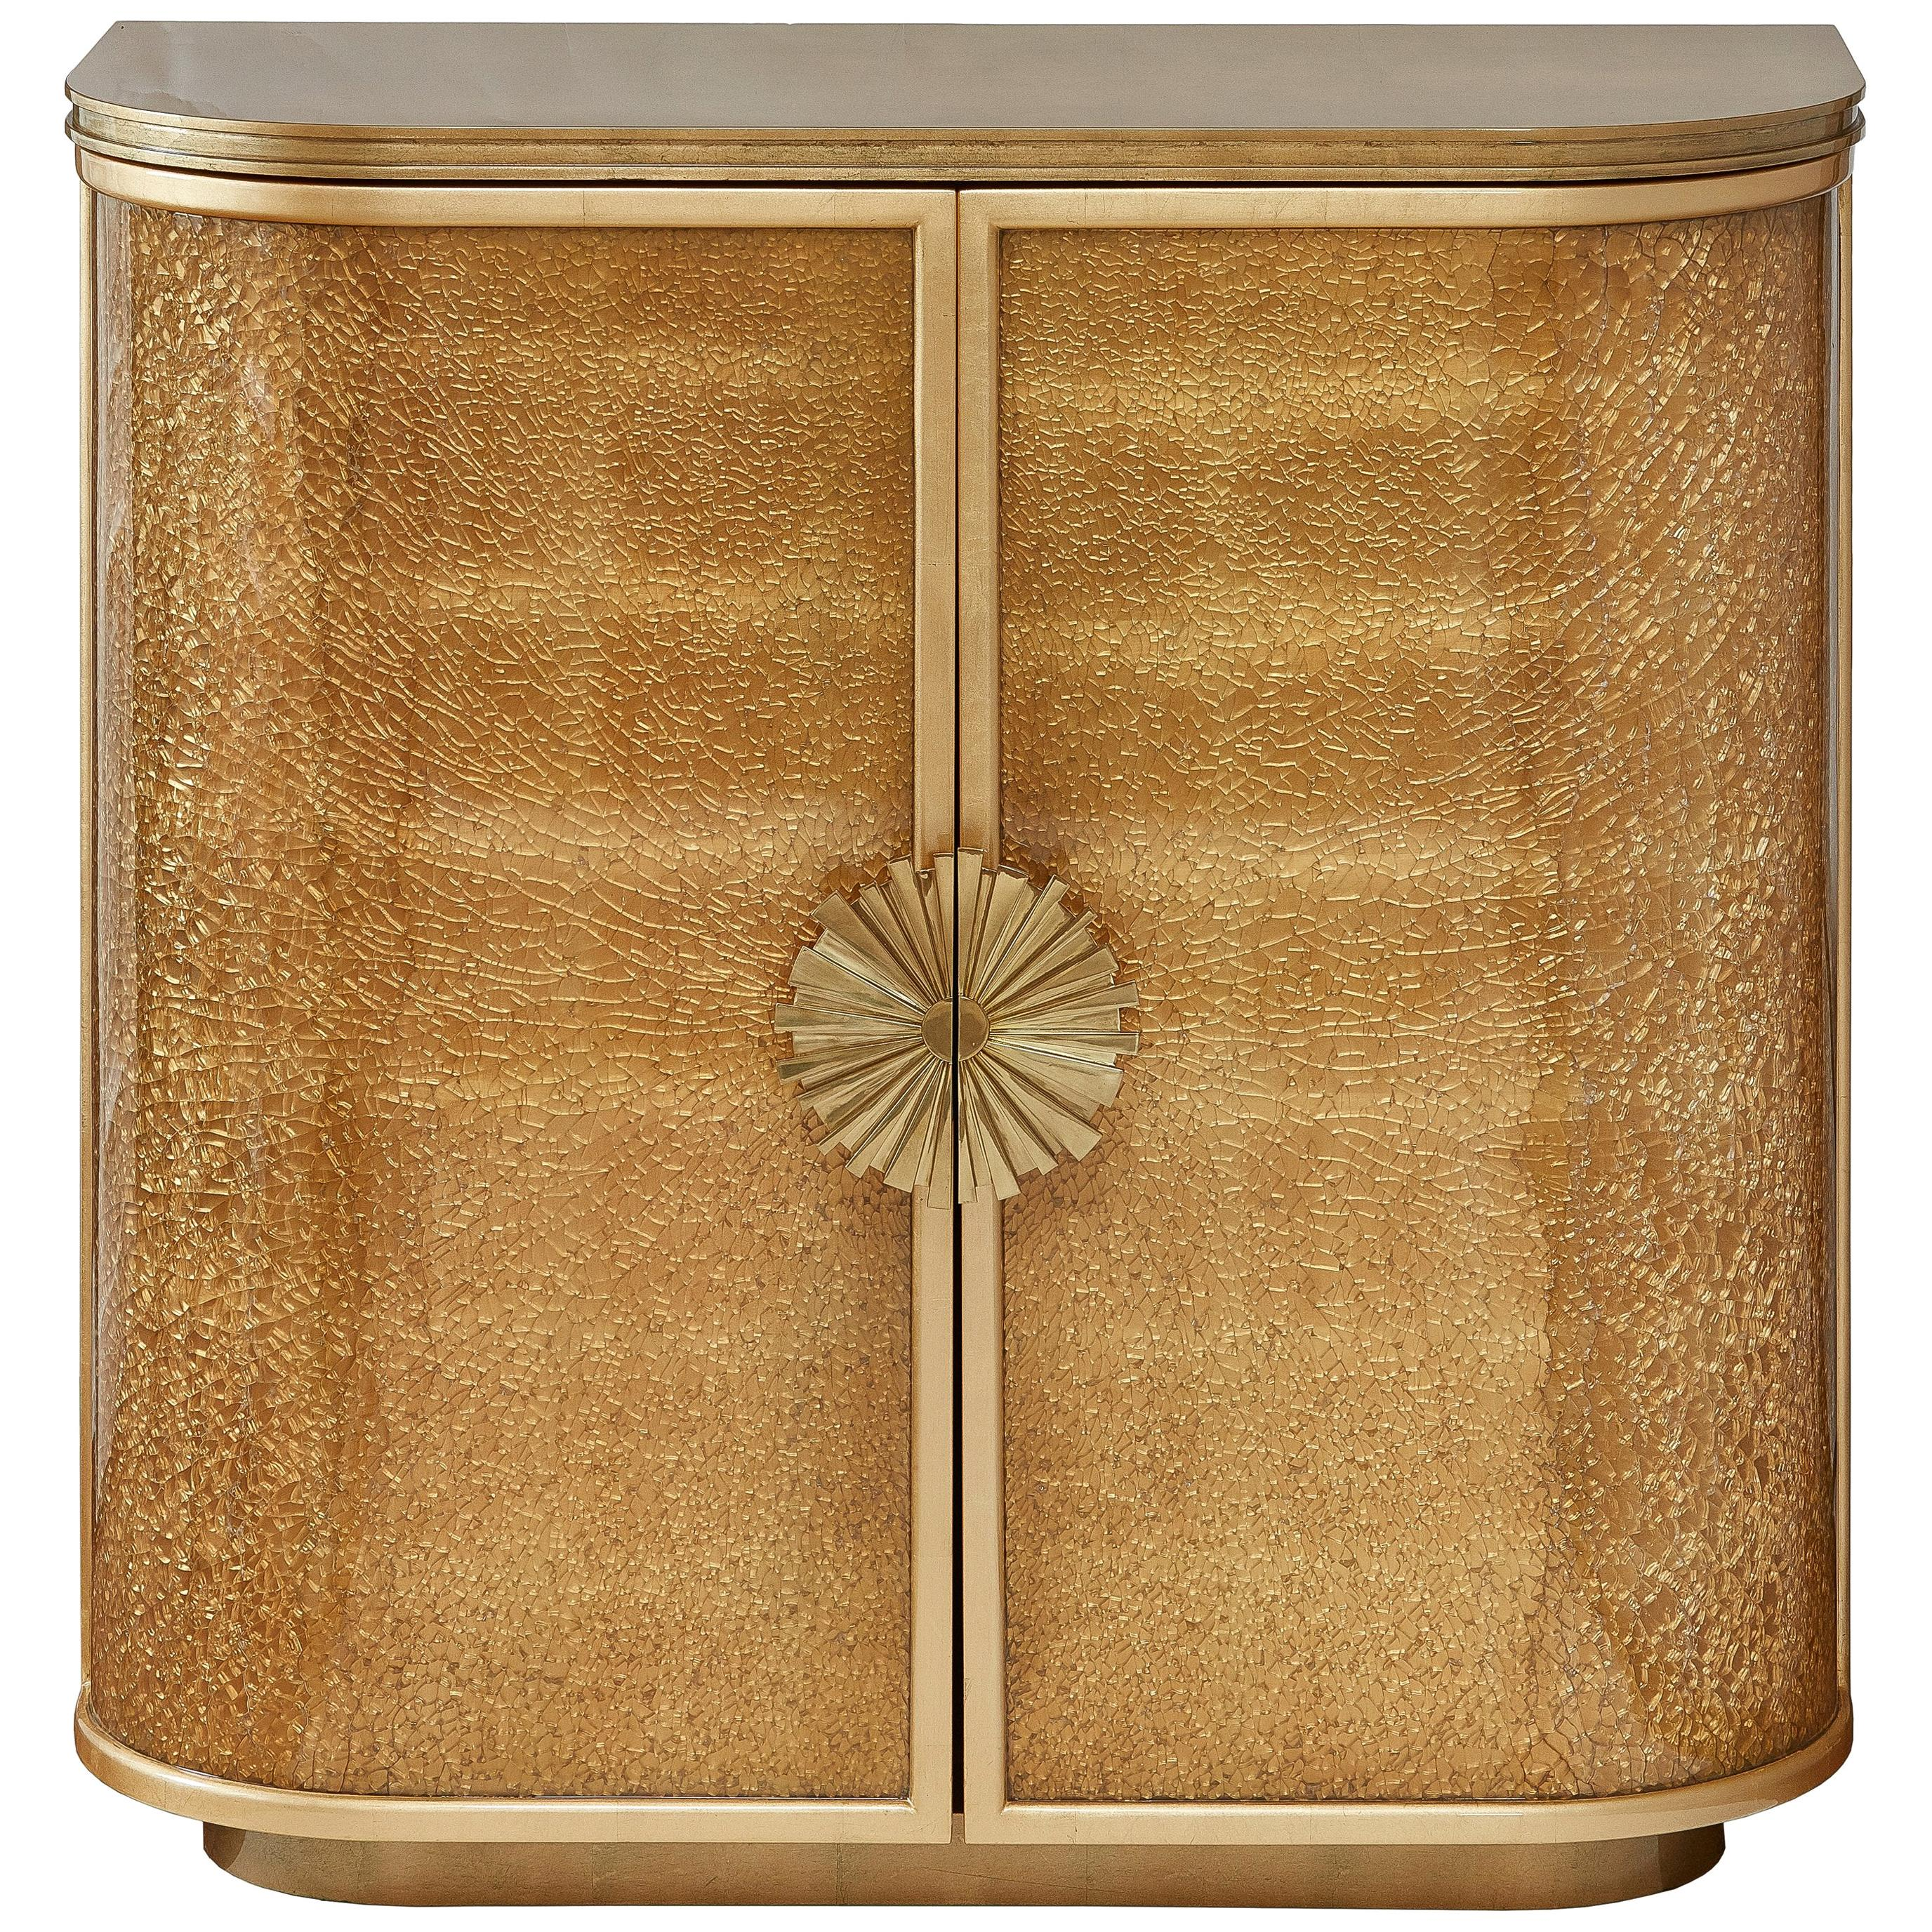 Gold Leaf Cabinet with Decorative Shattered Glass Panels, Available now